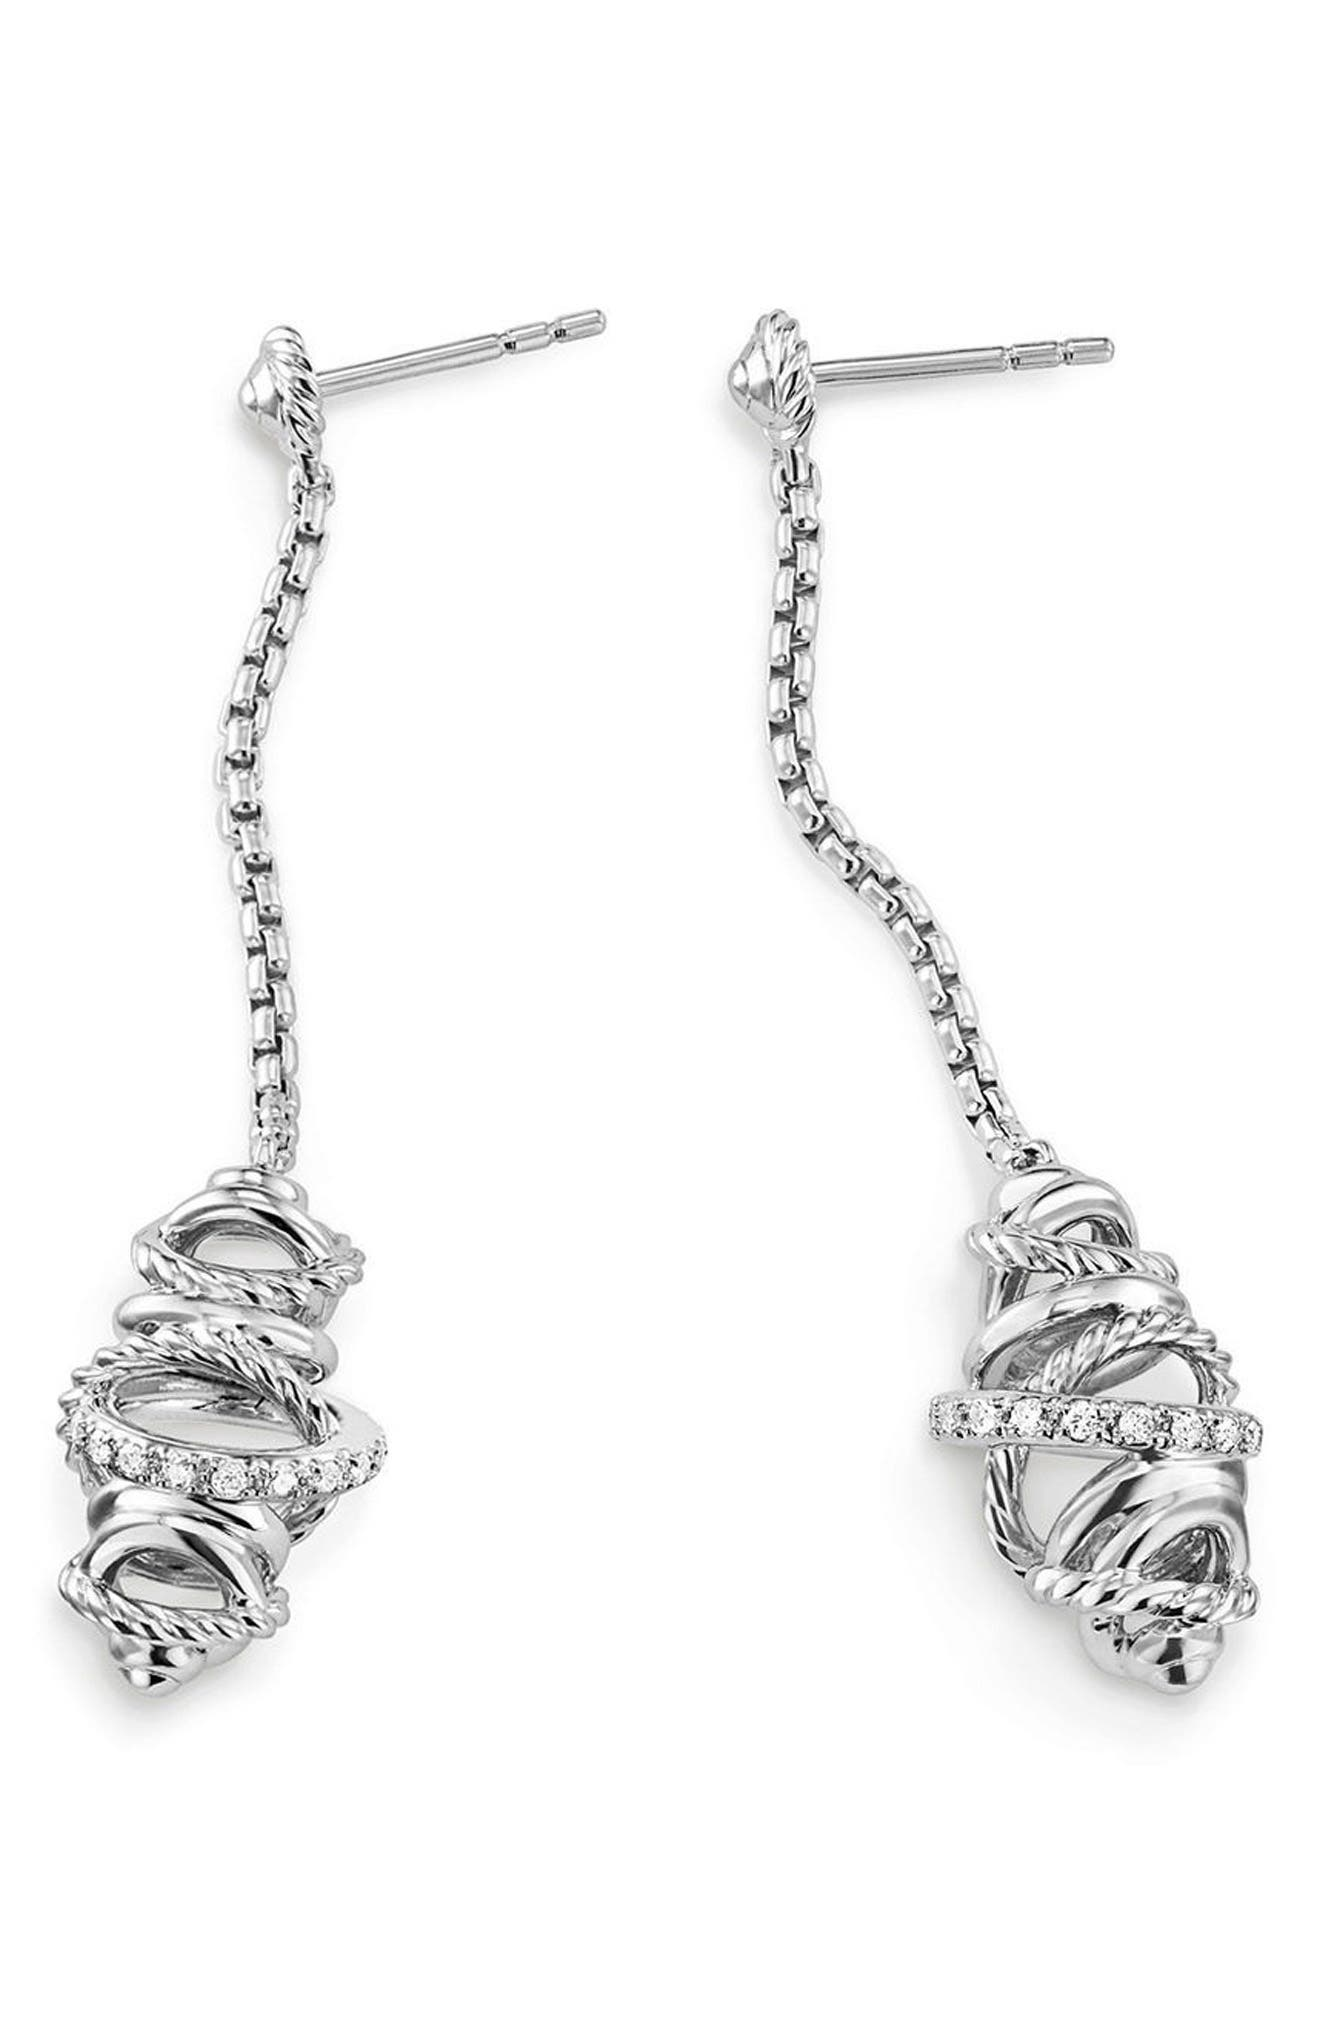 DAVID YURMAN,                             Crossover Chain Drop Earrings with Diamonds,                             Alternate thumbnail 2, color,                             SILVER